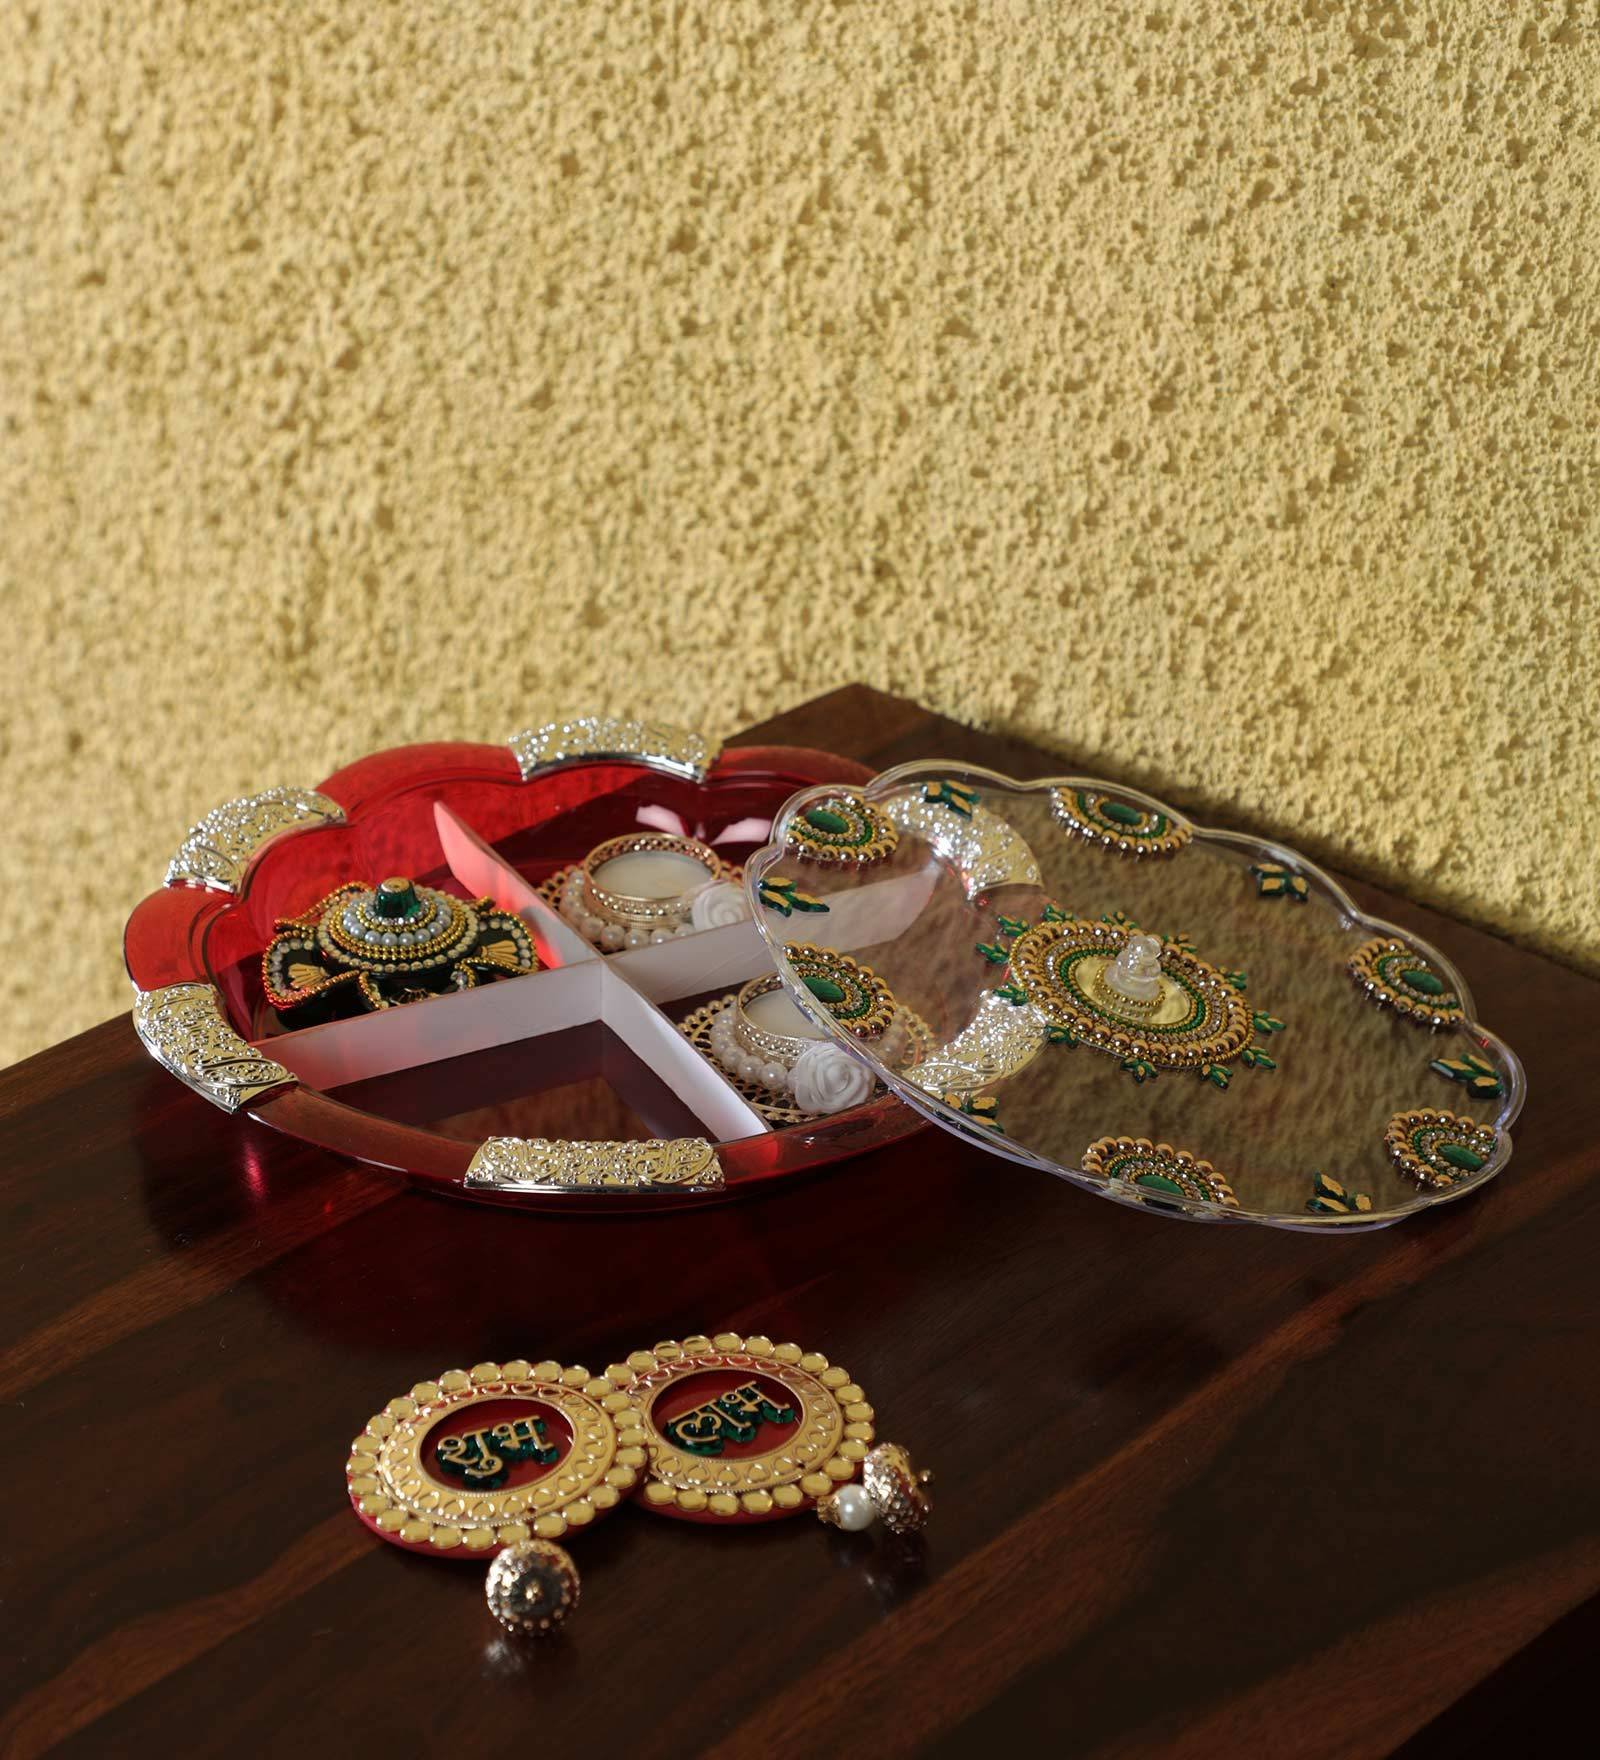 Itiha Home Décor Diwali Gift Set With Dryfruit Box (12 inches), Haldi Kukum Holder(3 inches), 1 Pair of Shubh Labh Hanging (4 inches), 2 Tea light Holder Diyas(3 inches)